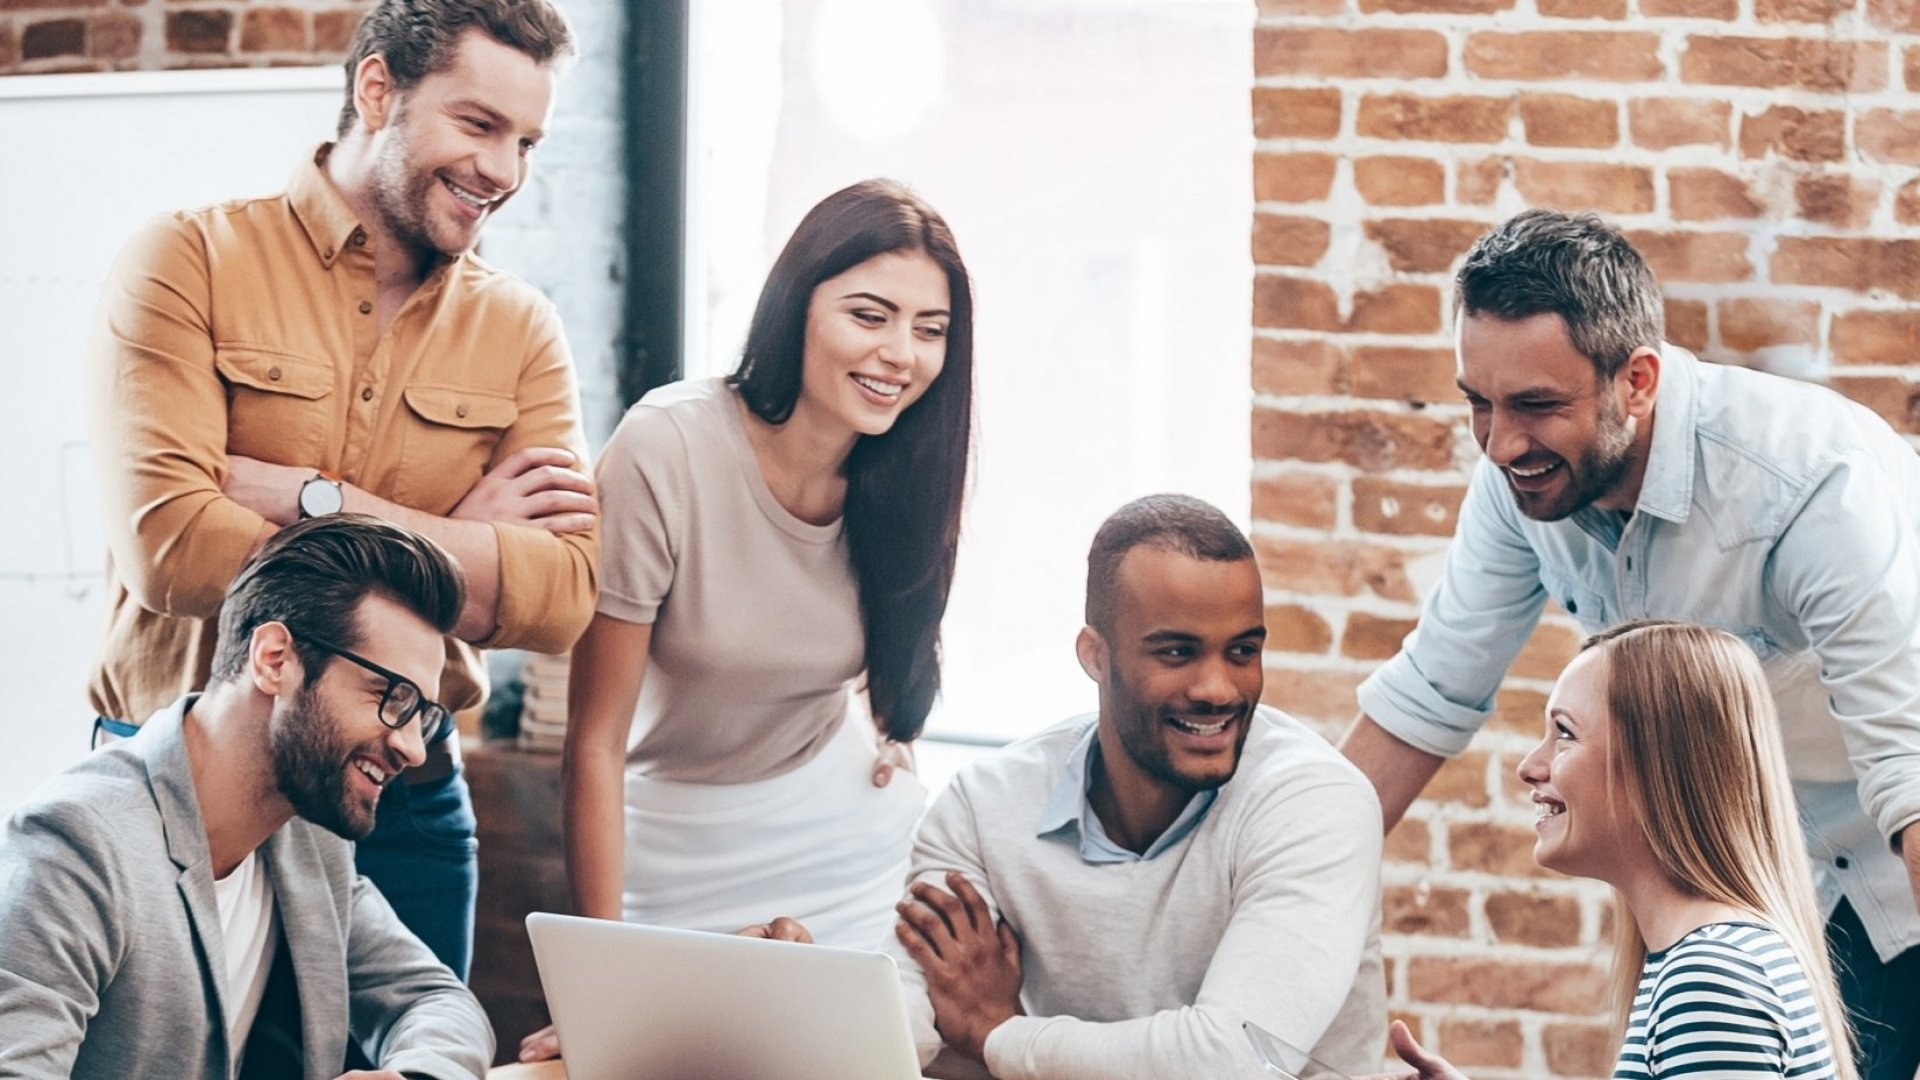 7 Tips for Creating a Positive Workplace Culture